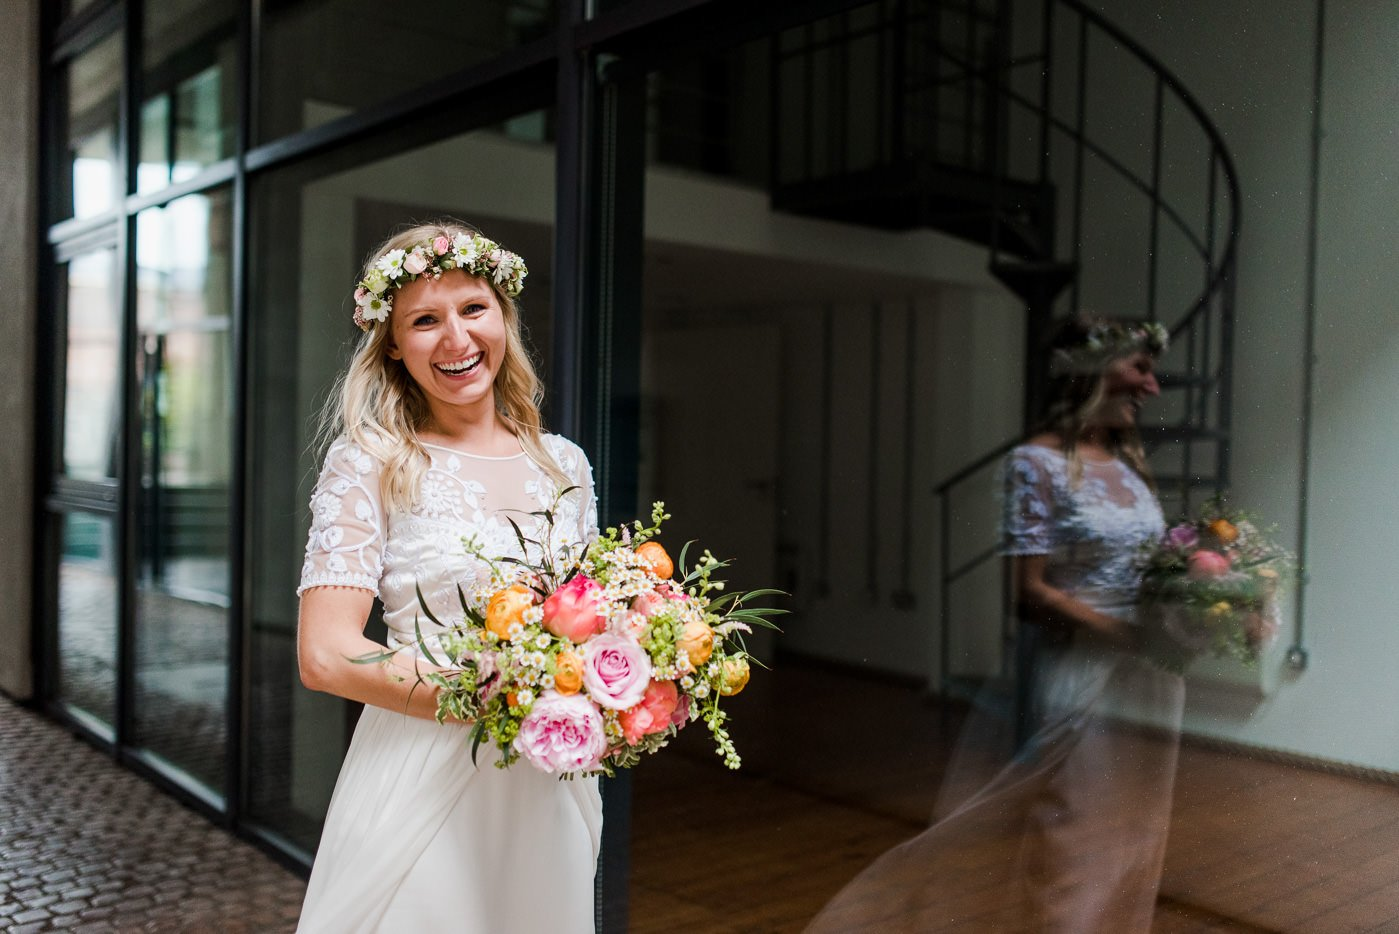 Paintworks wedding photographer in Bristol - Clare and Ed